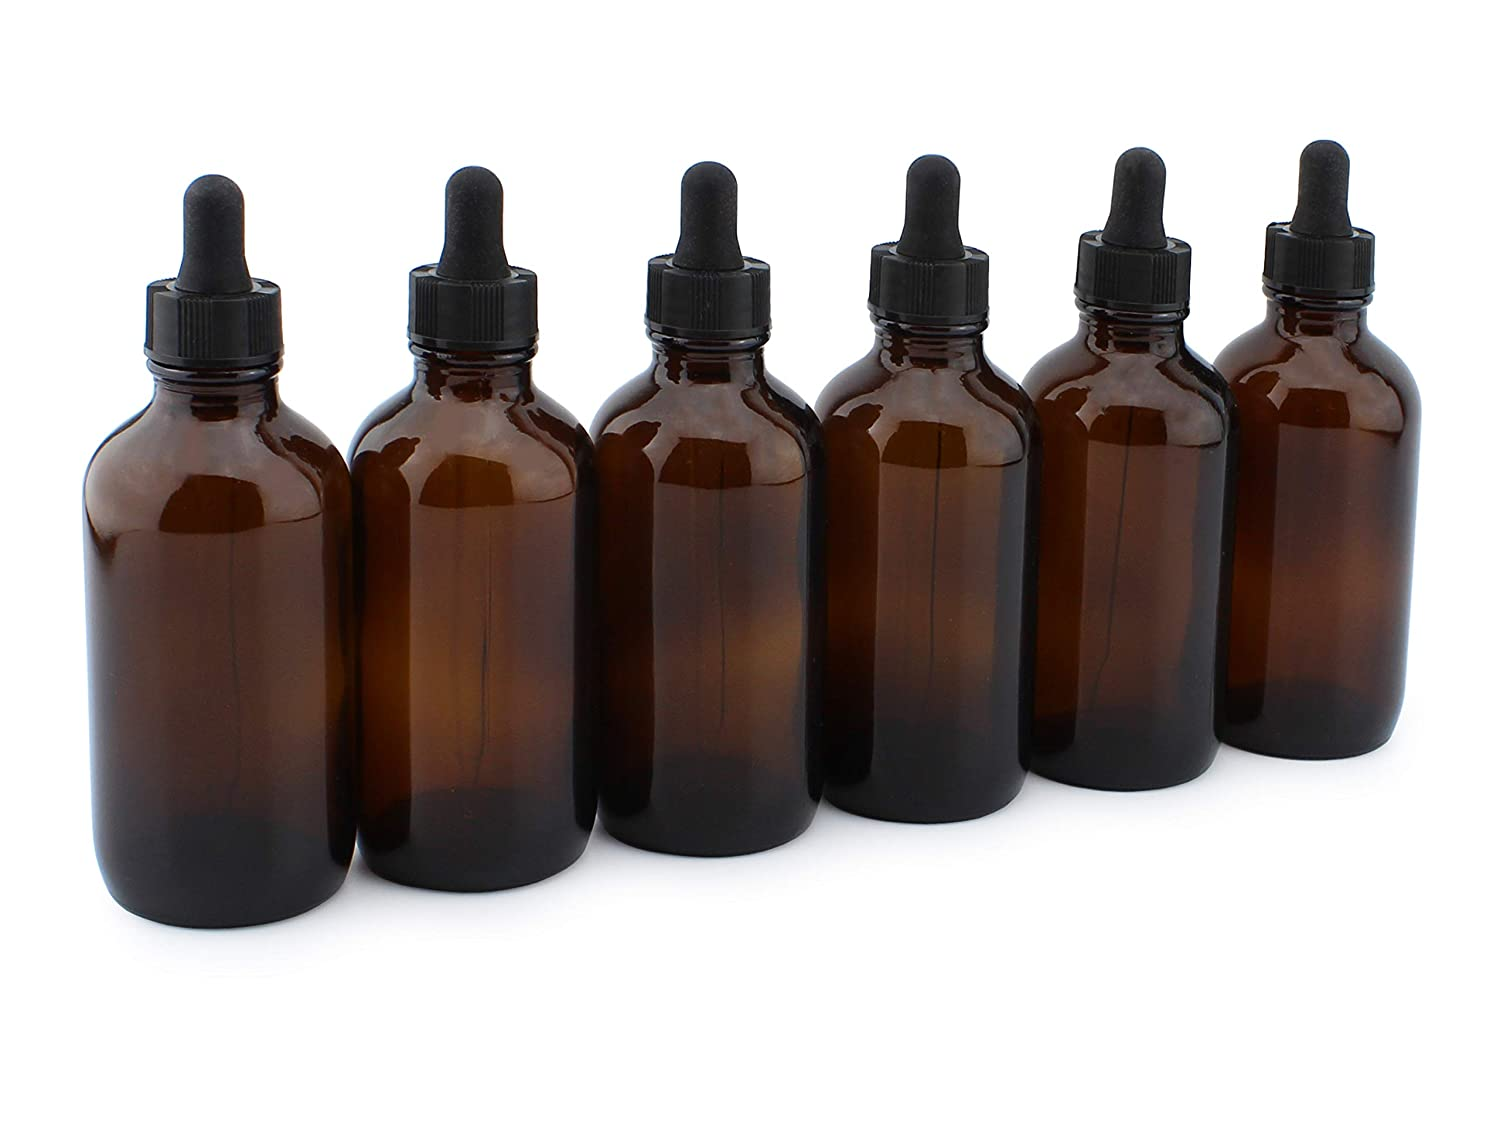 4oz Amber Glass Dropper Bottles (6-Pack), Refillable Glass Bottles for Essential Oils, Cosmetics, and Cooking